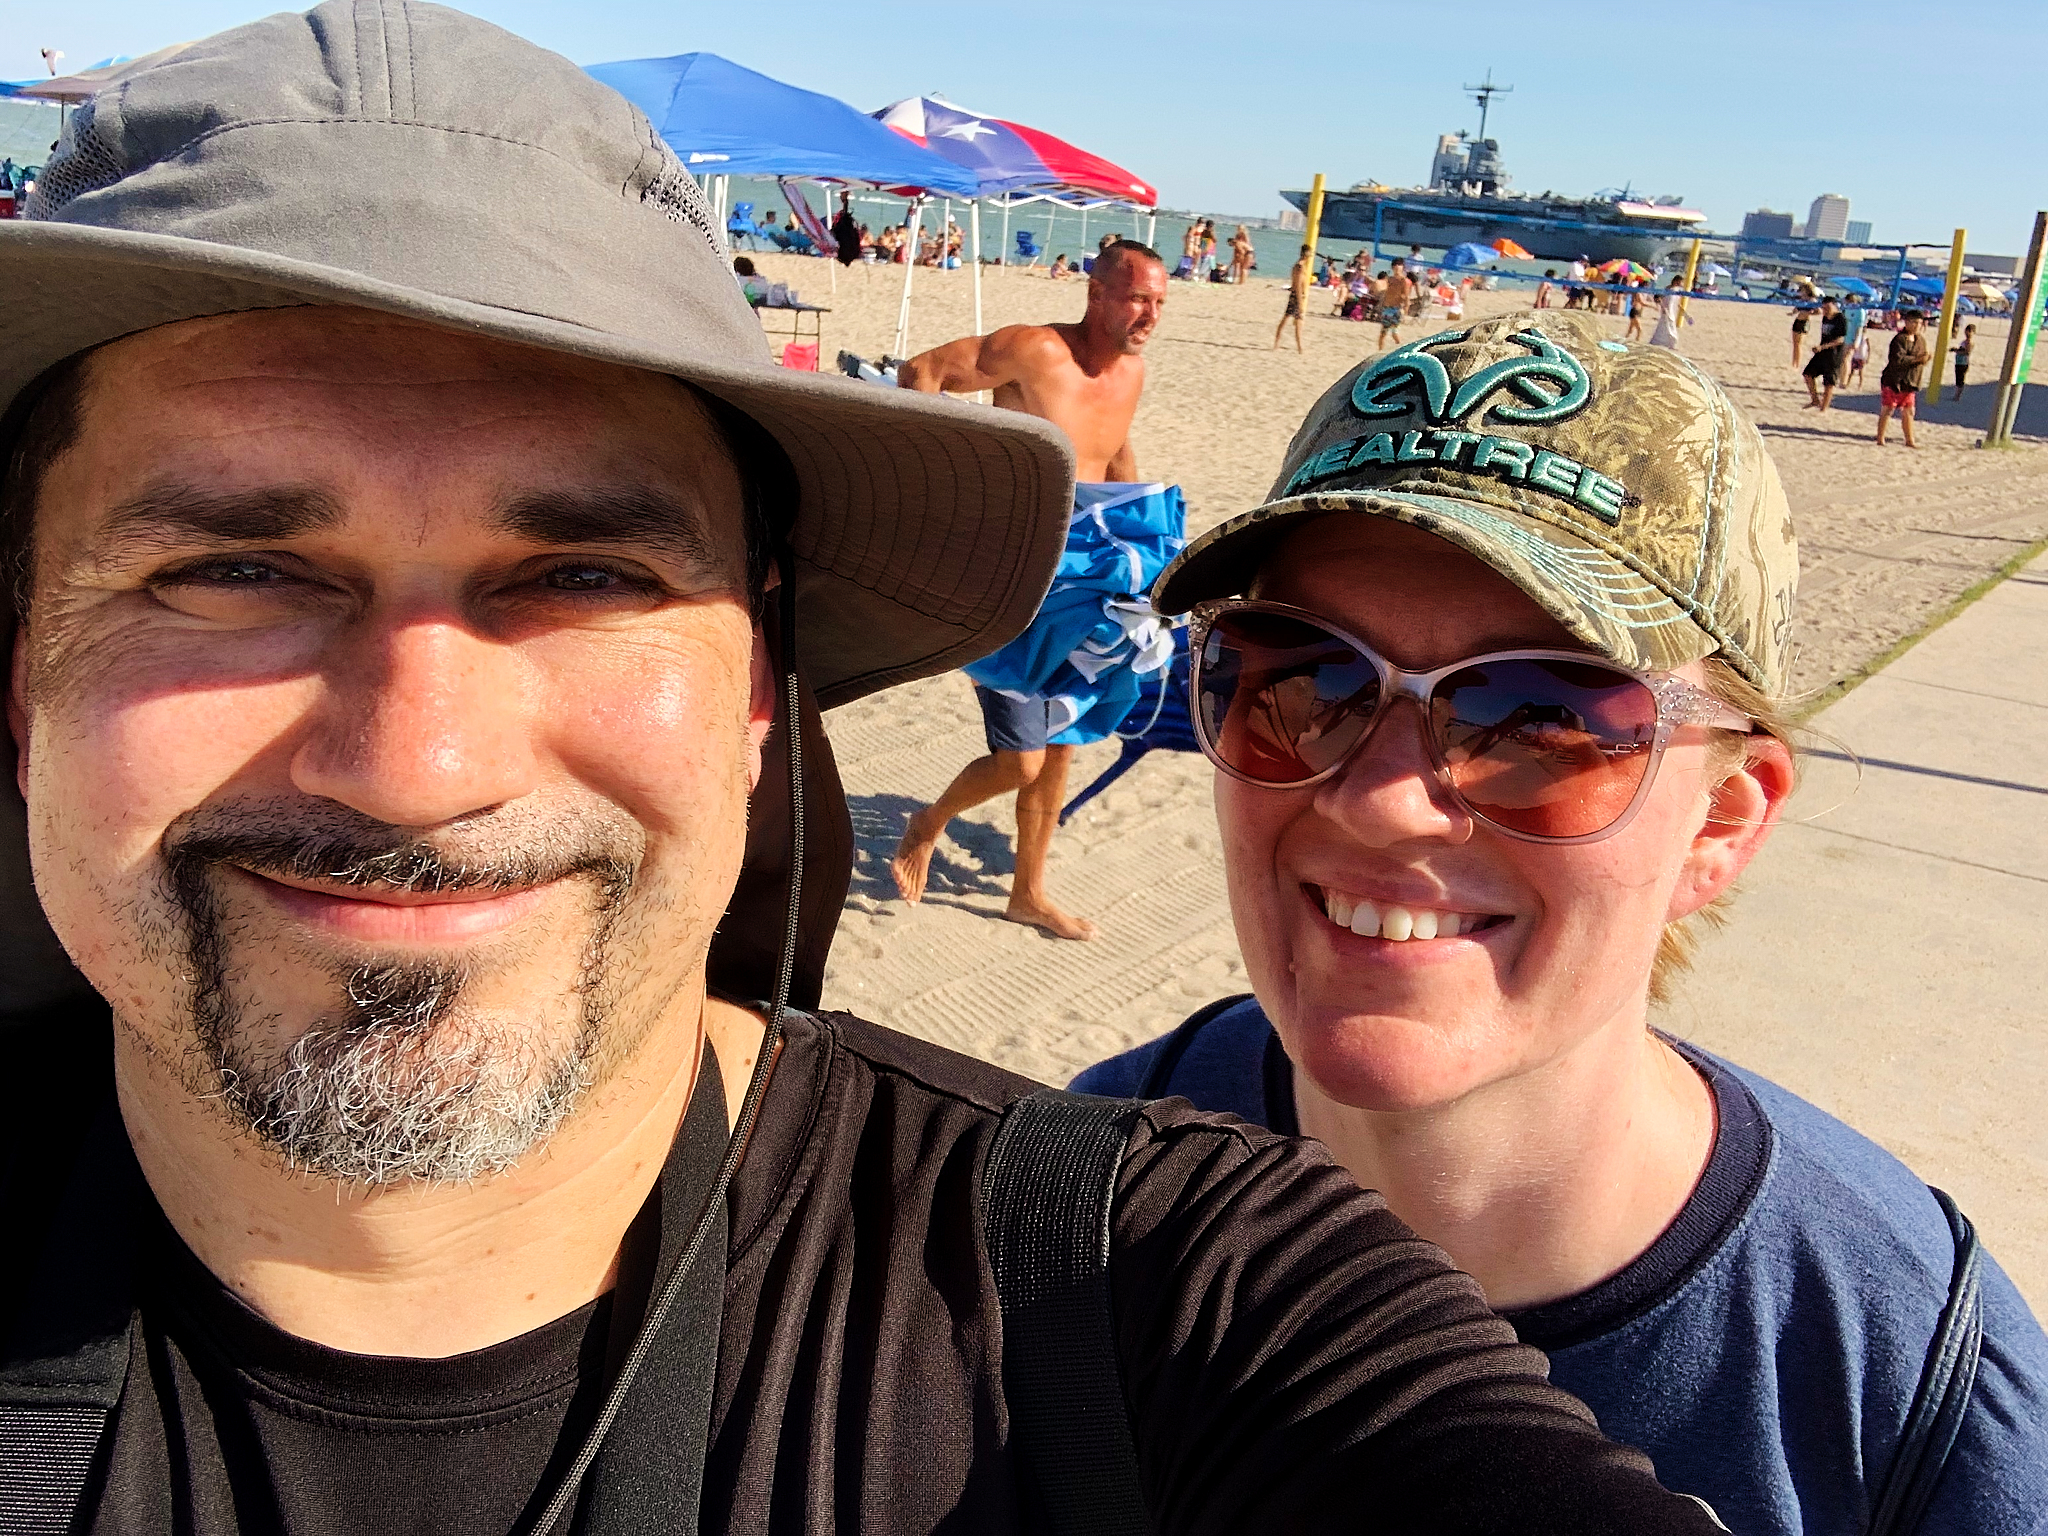 We tried to do the selfie-thing with the USS Lexington in the background but kept getting photo-bombed...so to hell with it -- dude bro in the background is here to stay.